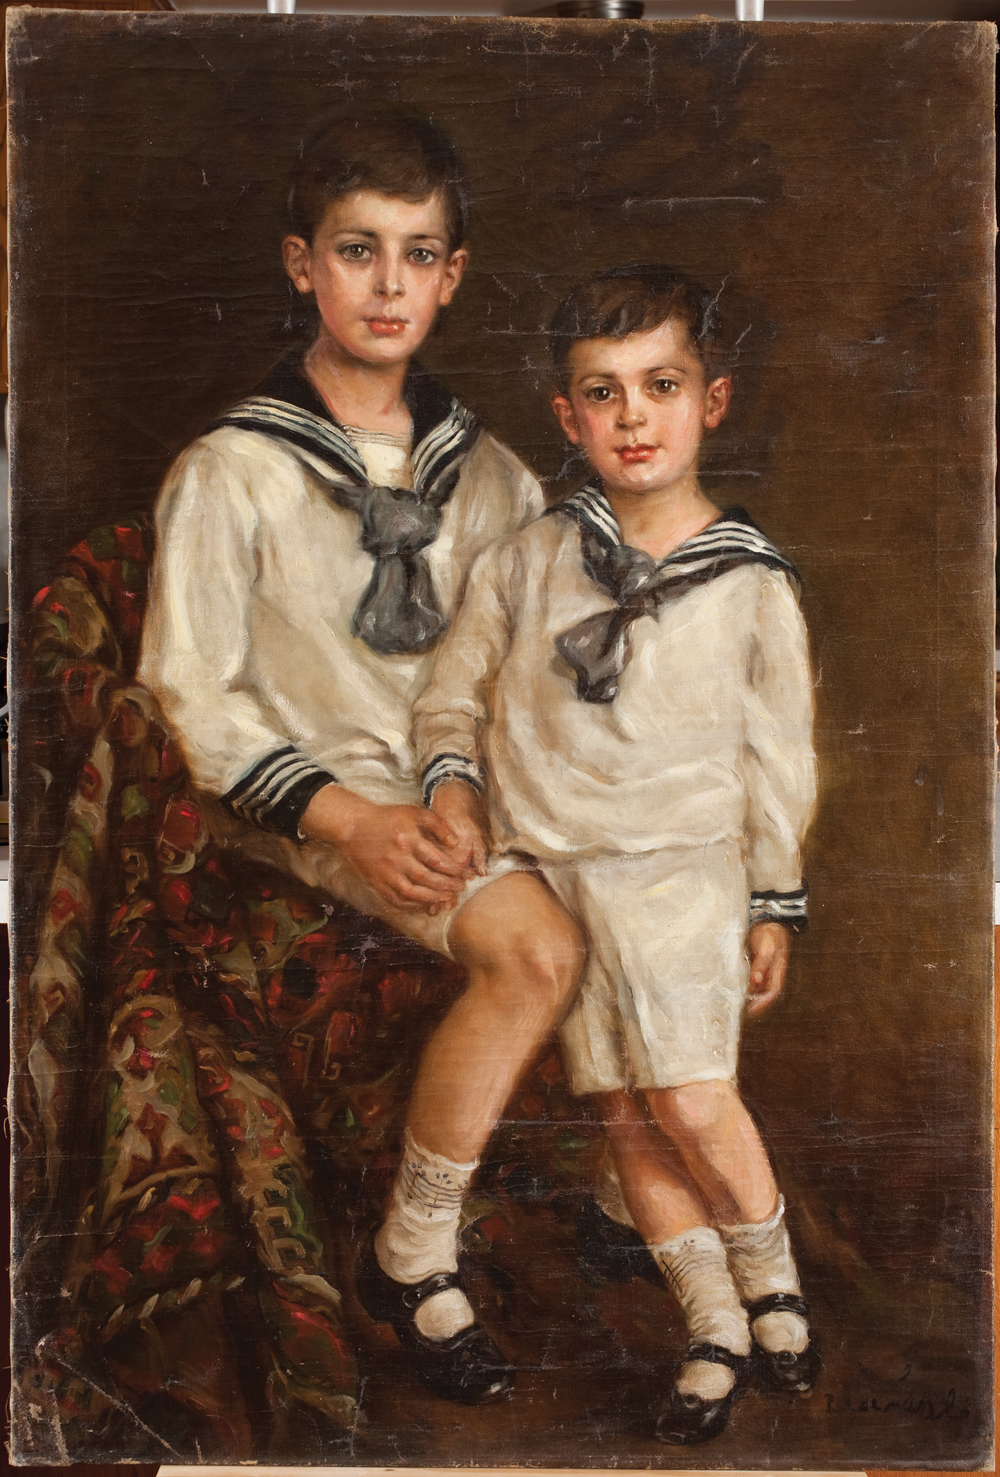 Elmyr de Hory (Hungary, 1906-1976), Portrait of Elmyr and his brother Stephan, ca. 1950, oil on canvas, in the style of Philip de Laszlo (Hungarian, 1869-1937). Collection of Mark Forgy. Photo: Robert Fogt.